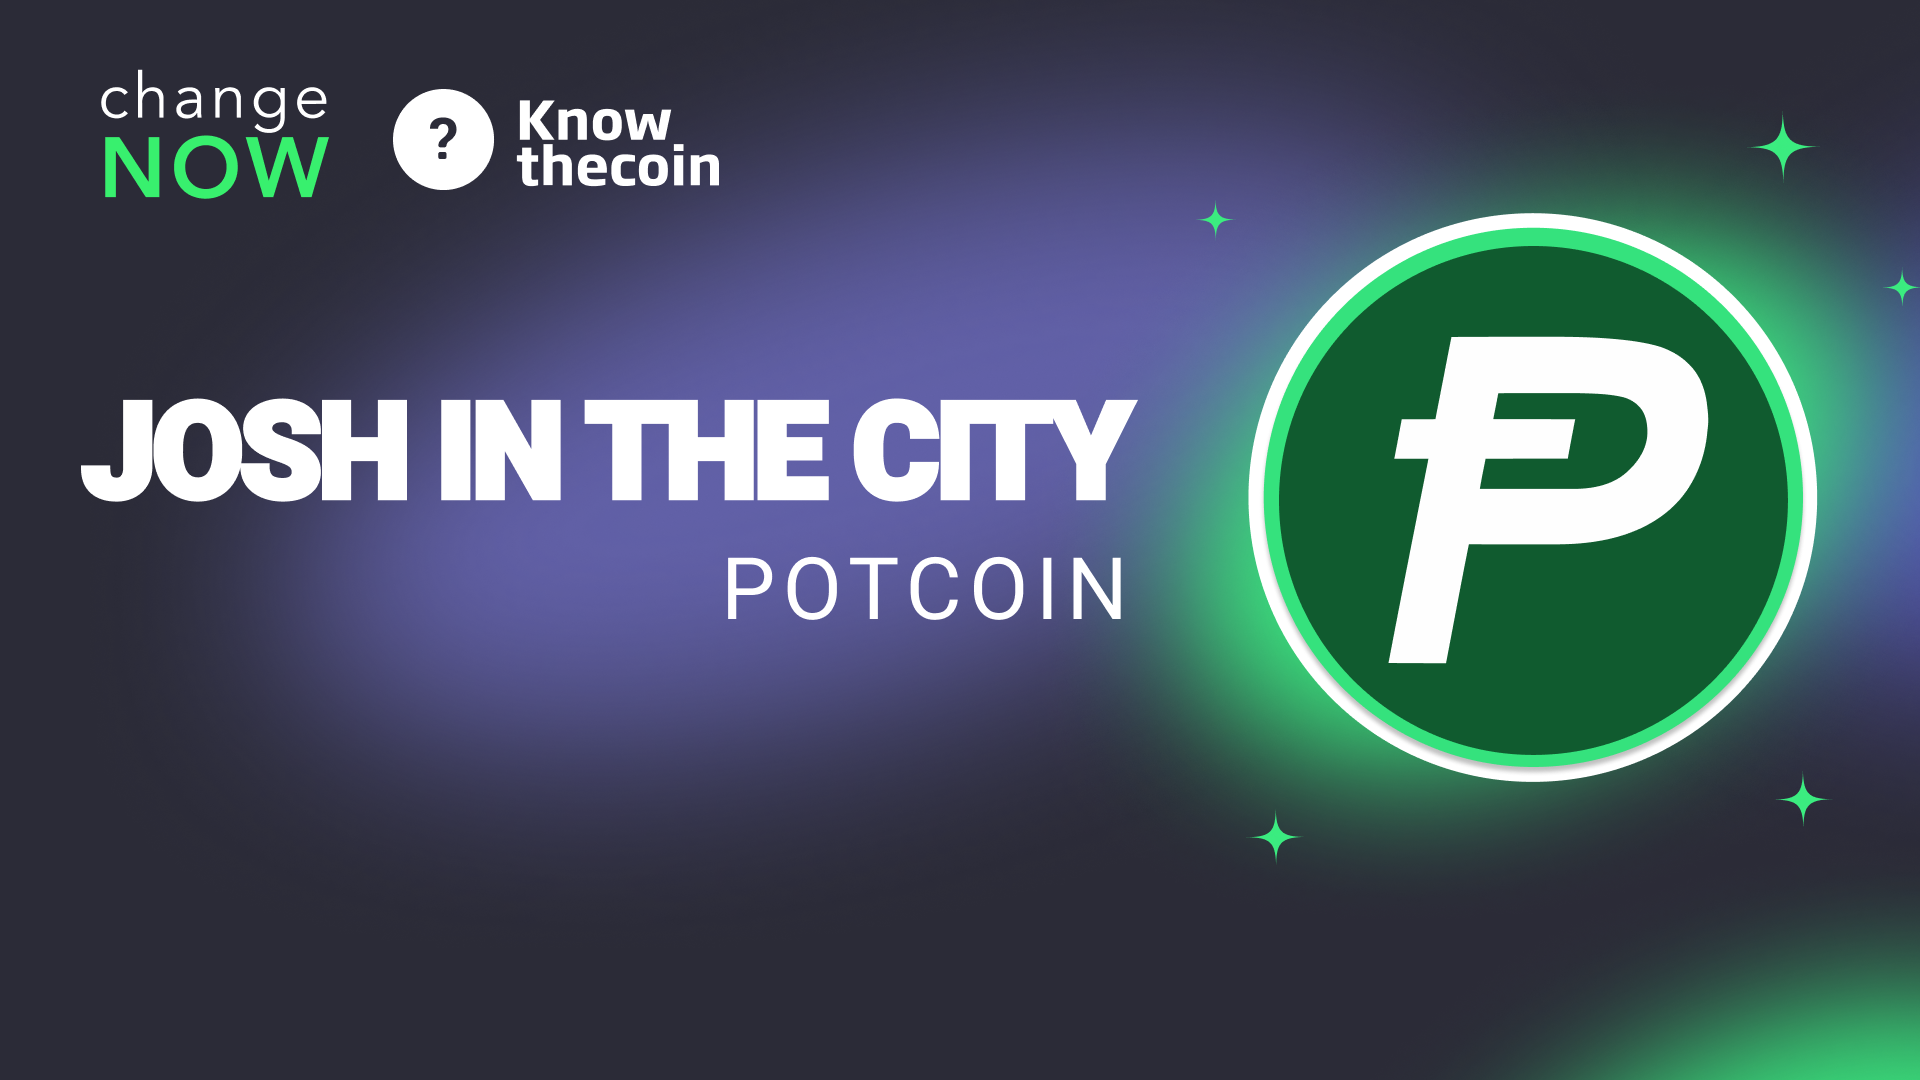 Know The Coin: PotCoin's Community Lead Josh In The City